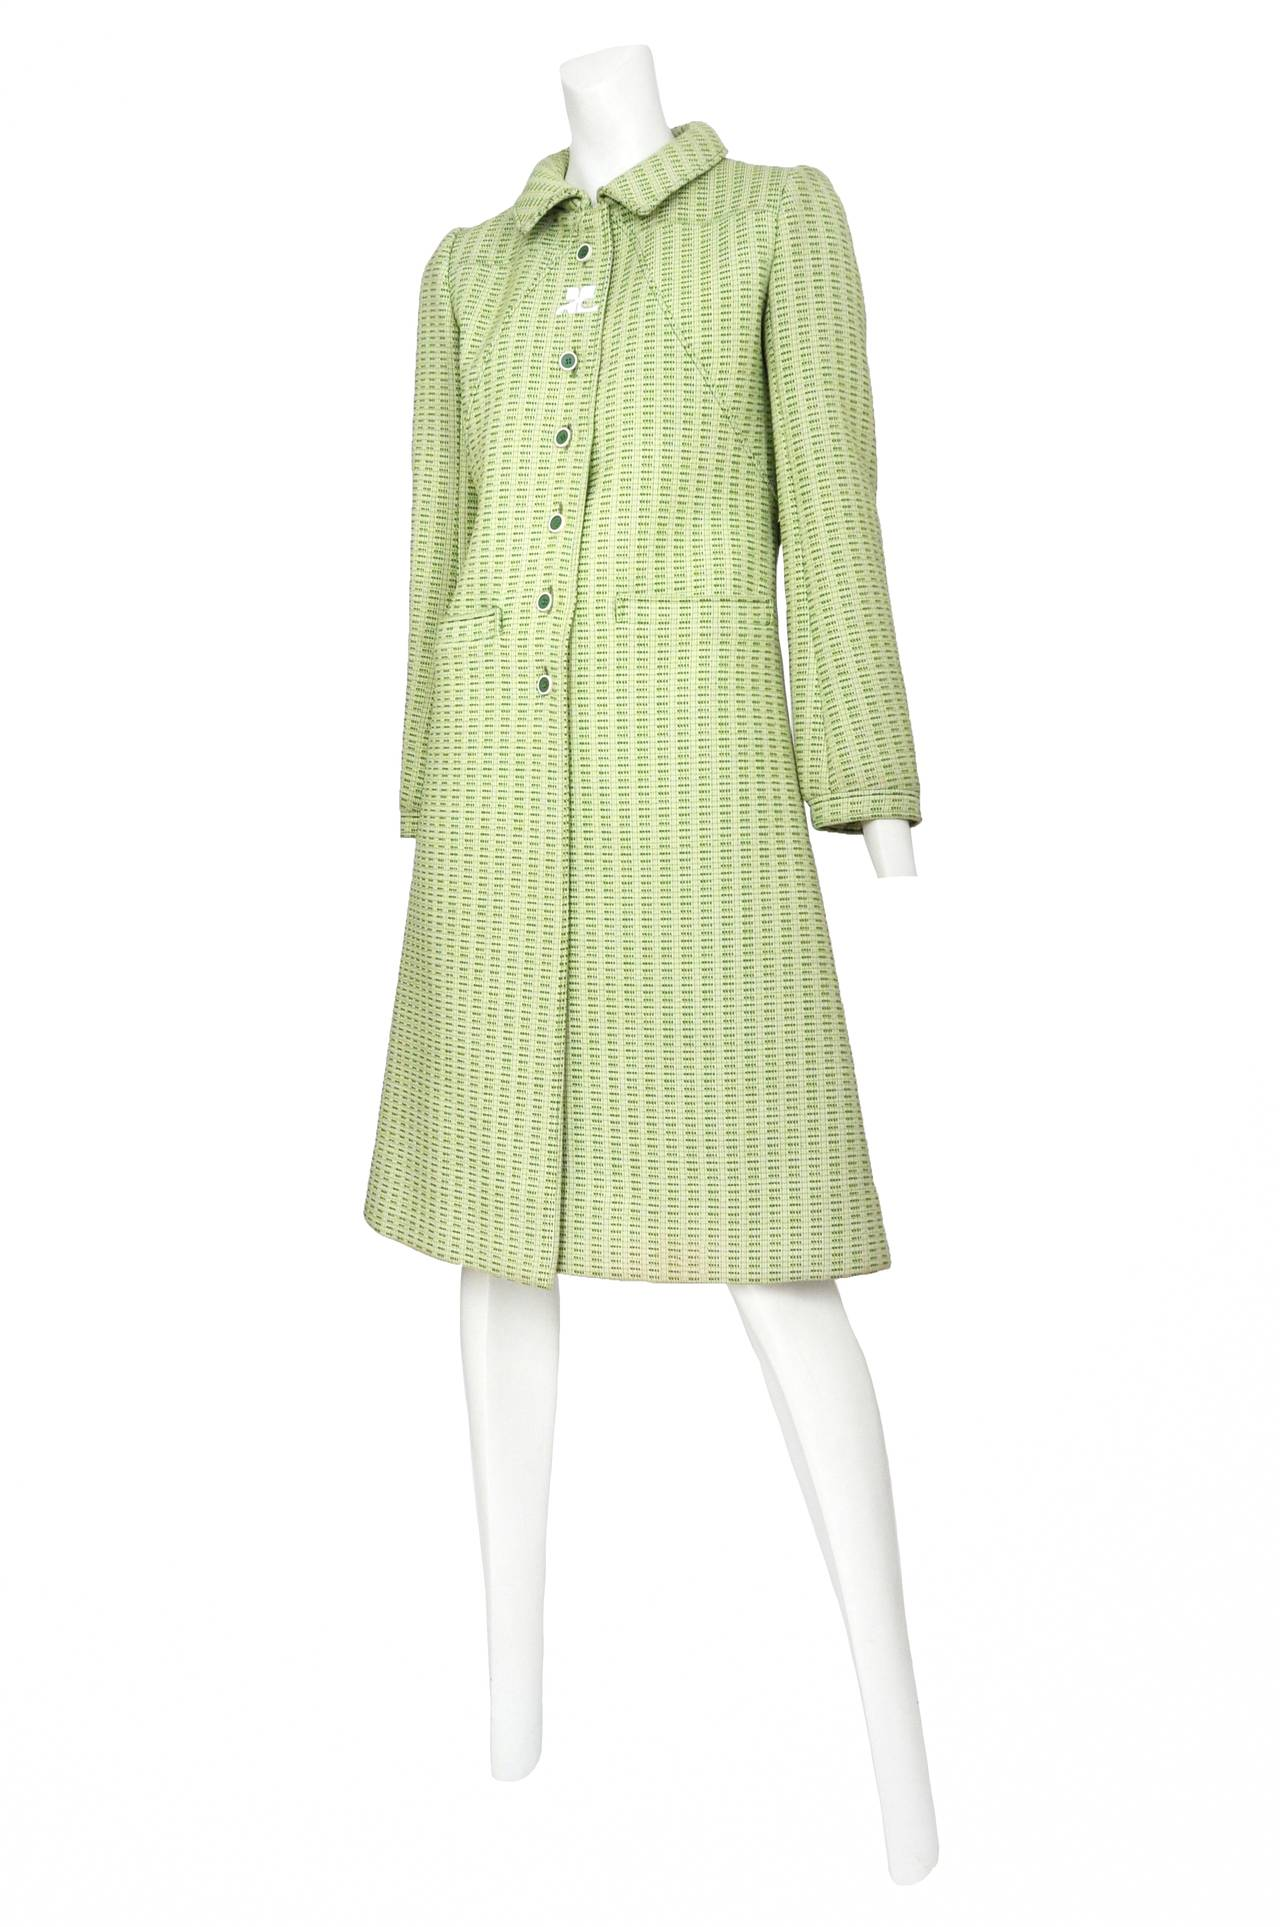 Vintage Andre Courreges pea green textured wool collared coat featuring front waist welt pockets, front torso button closure, defined yoke, back waist belt and white Courreges logo at neck line.